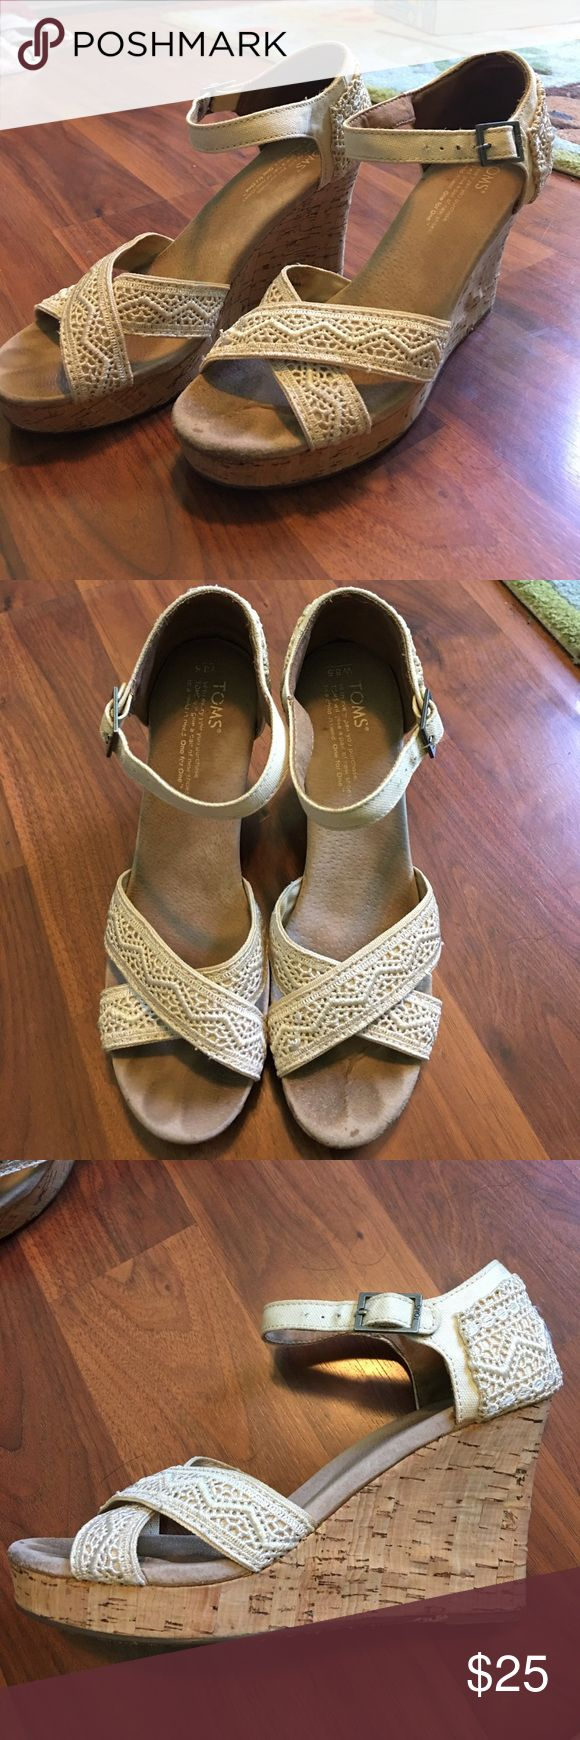 Toms Crochet Wedges Toms crochet wedges in good used condition. Reposhing because they do not fit sadly ☹️. Cream colored. Some wear on the toes, not noticeable when wearing them. Toms Shoes Wedges